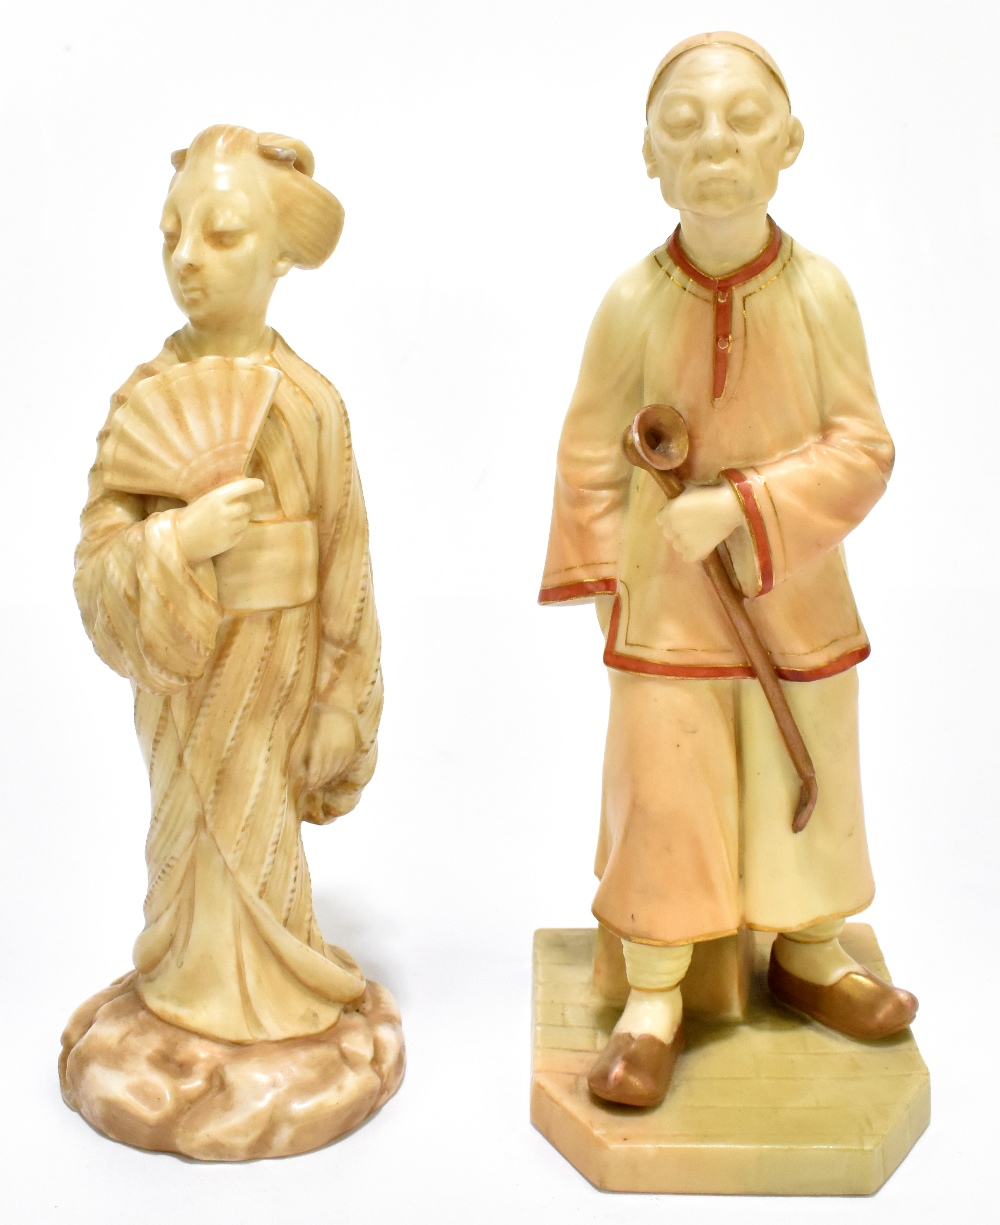 ROYAL WORCESTER; a figure emblematic of China modelled by James Hadley, decorated in a blush finish,